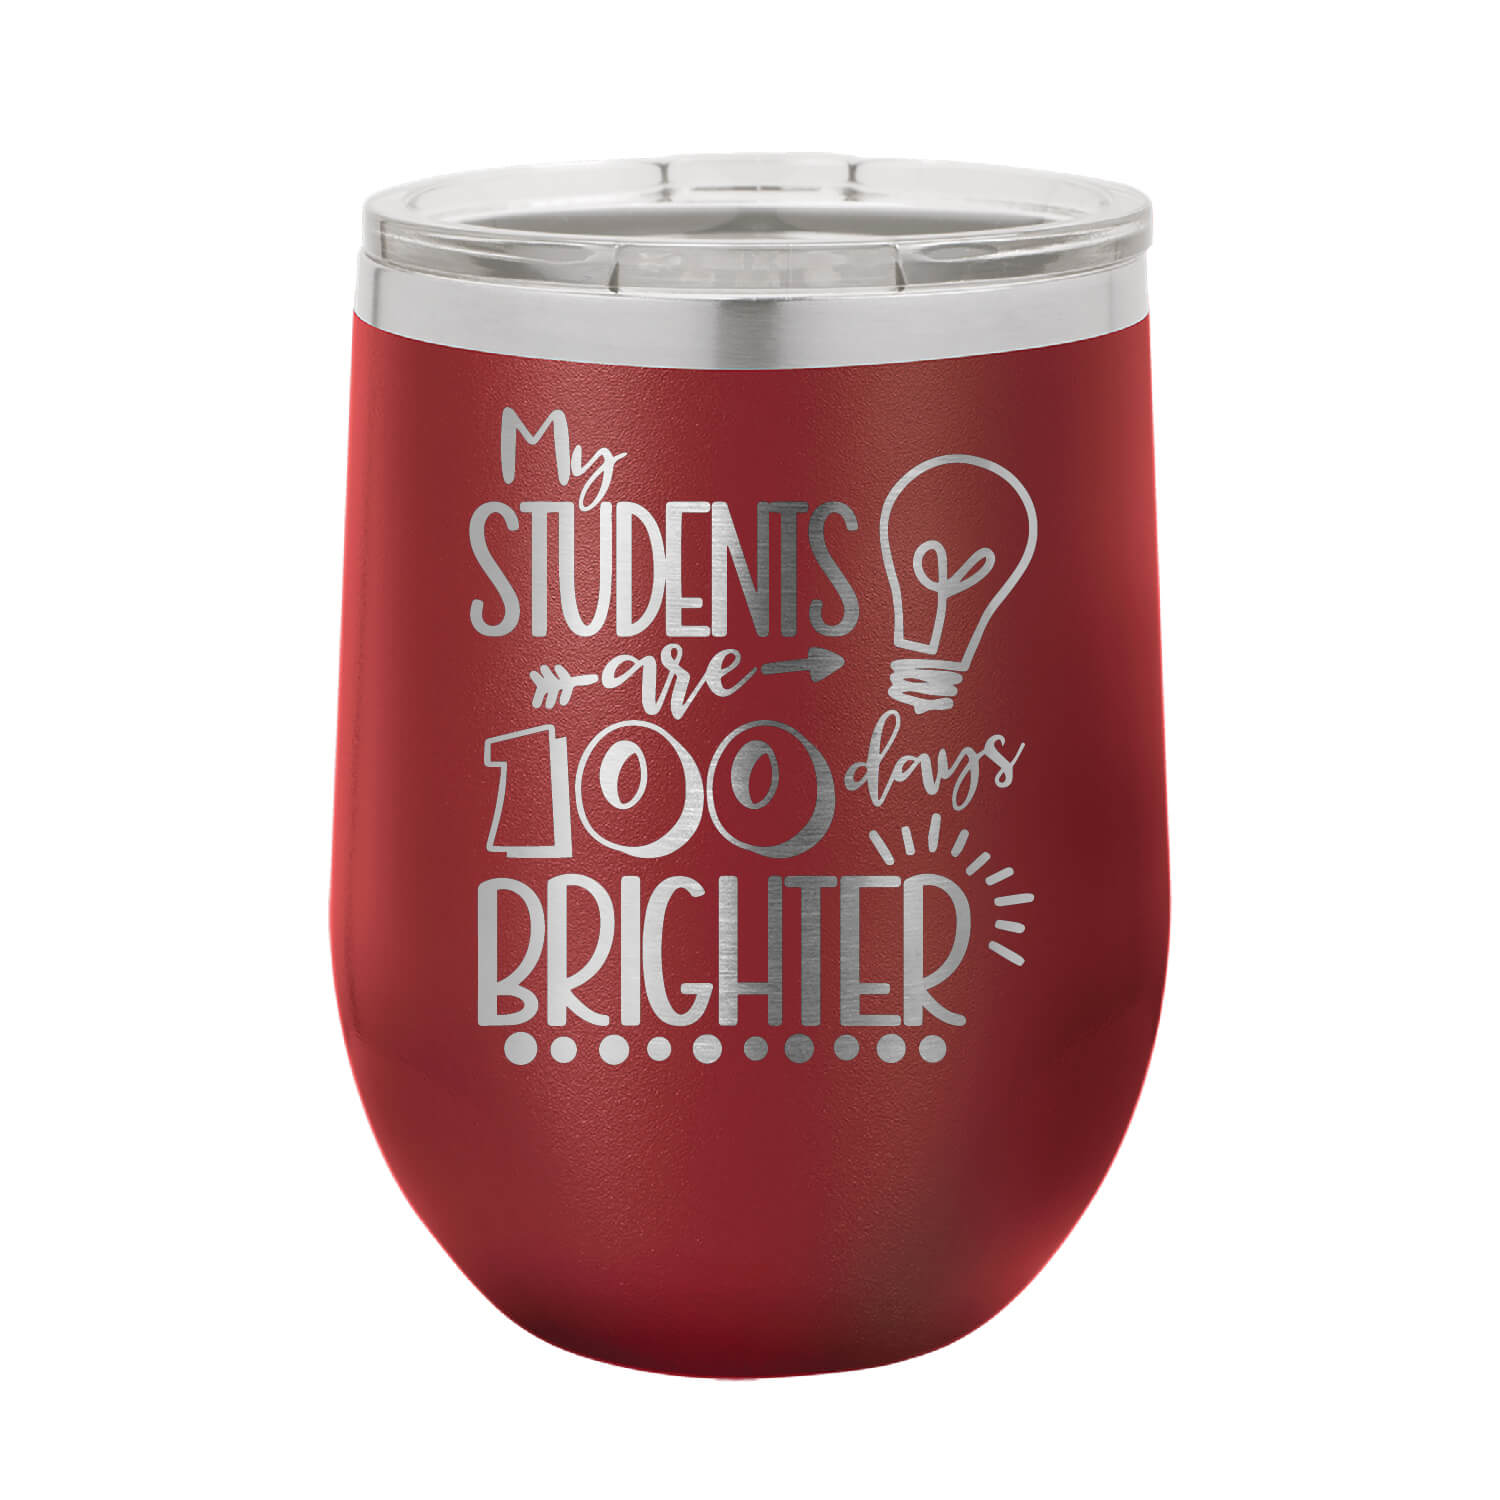 My Students Are 100 Days Brighter Wine Tumbler